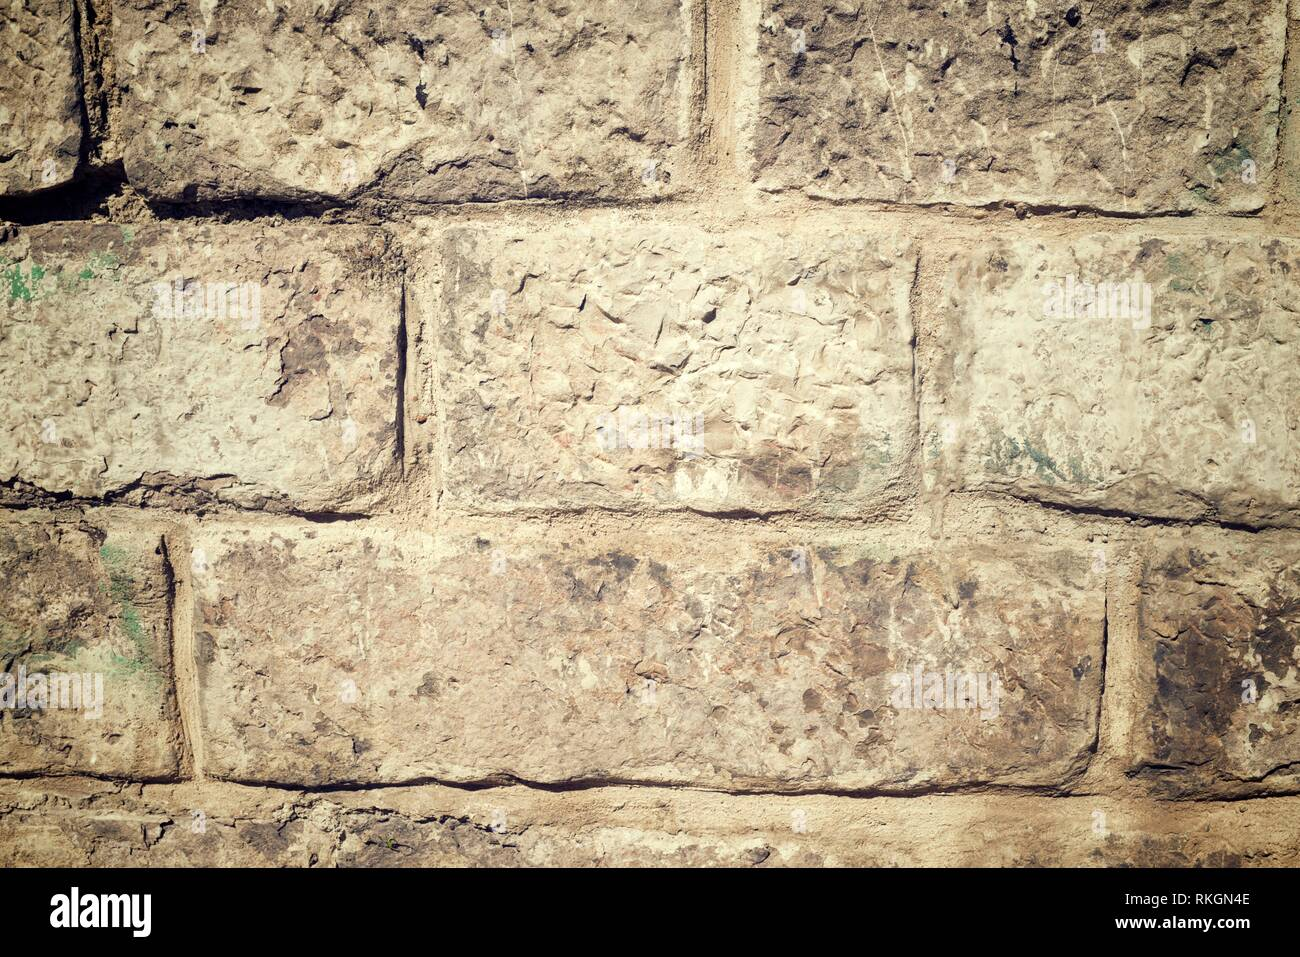 Stone wall background at high resolution. - Stock Image